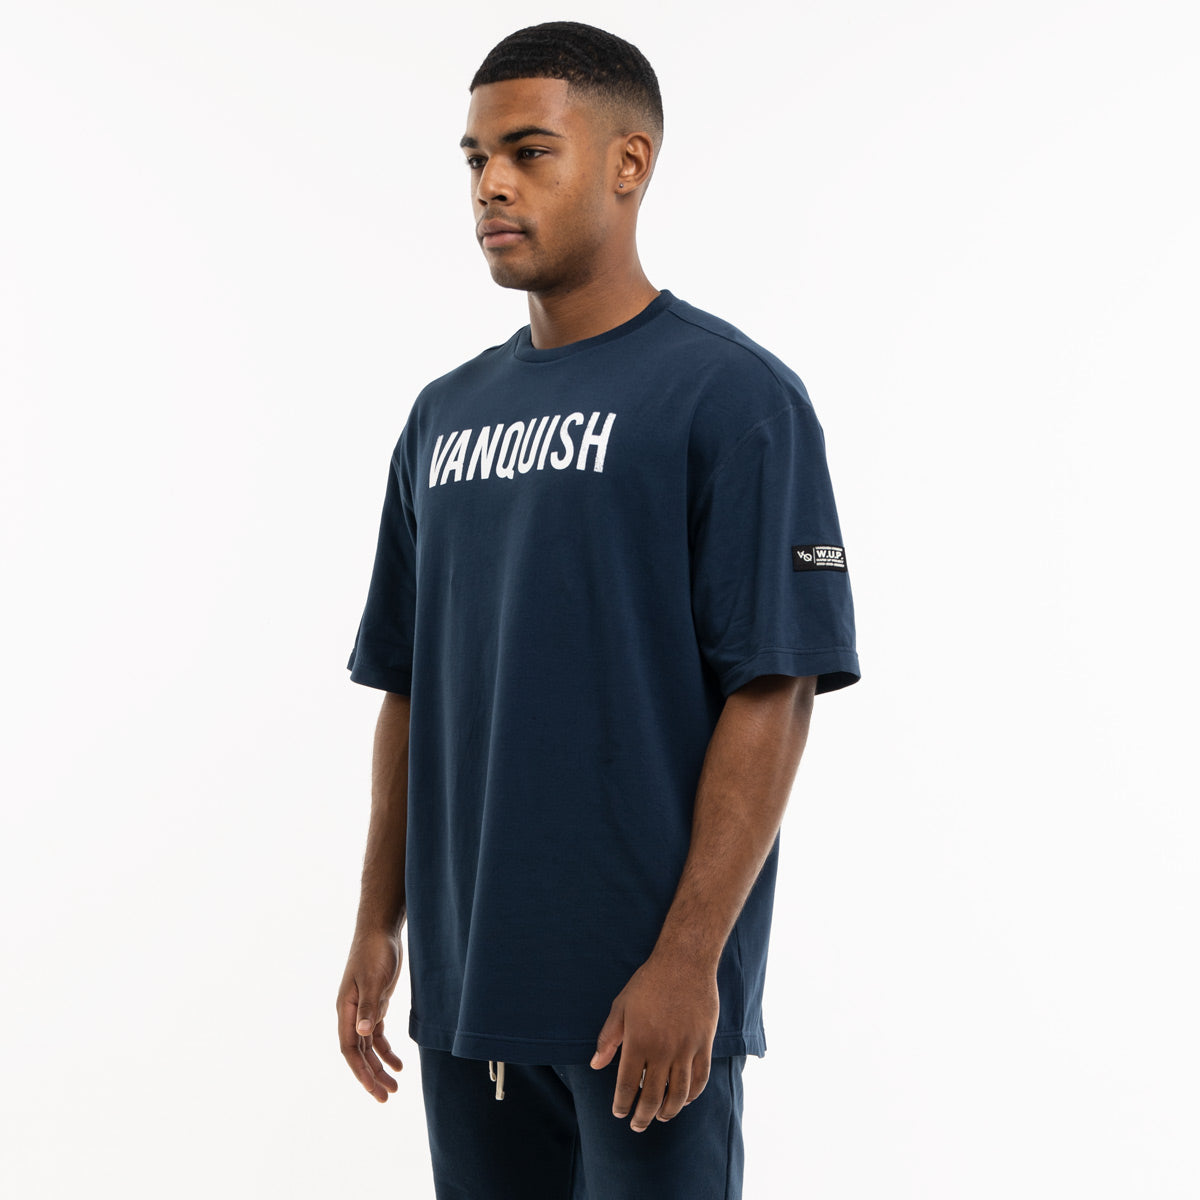 Vanquish Warm Up Project Navy Oversized Short Sleeve T Shirt